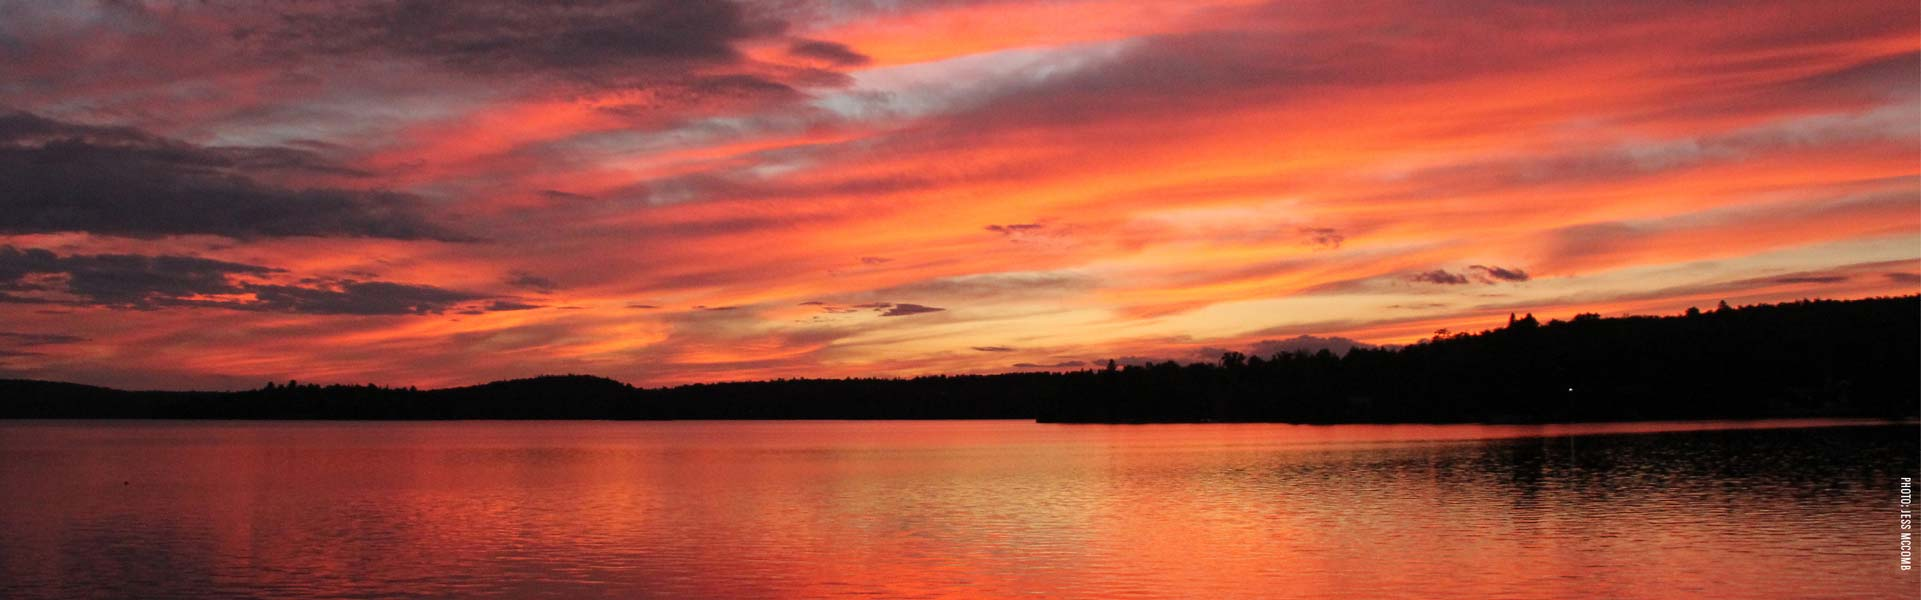 Brilliant orange sunset over a lake in South Algonquin, photo by Jess McComb